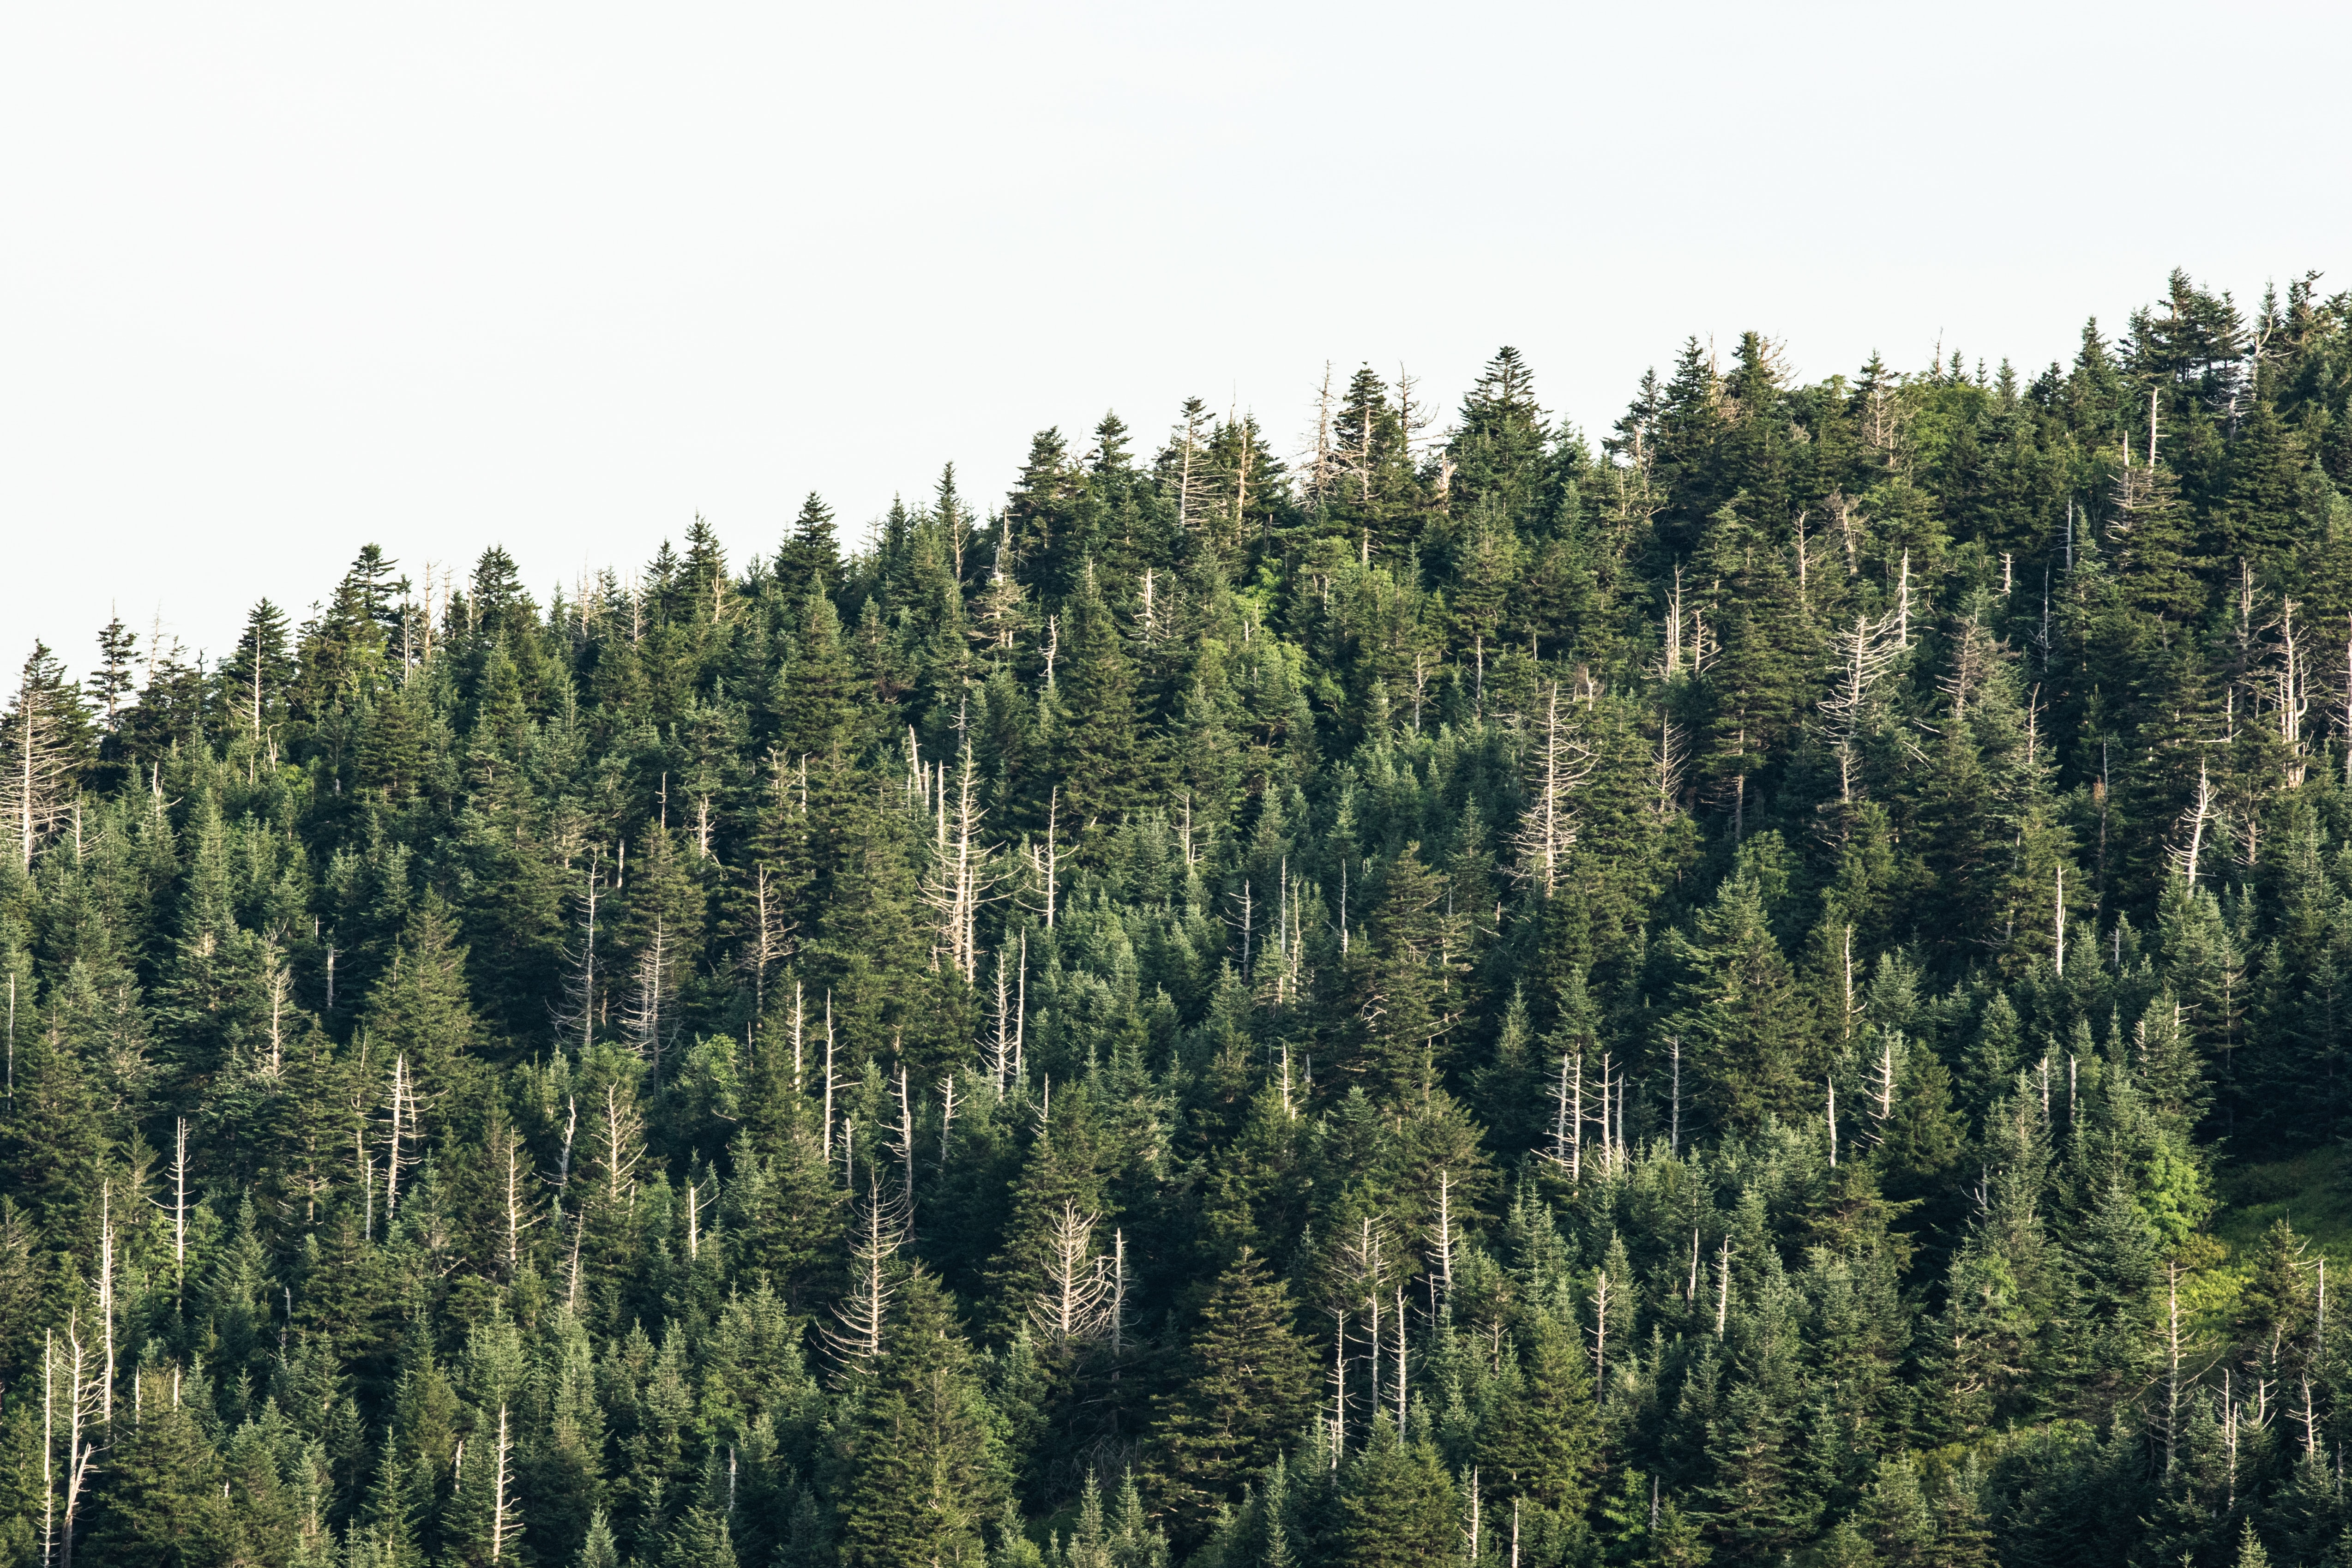 green pine trees